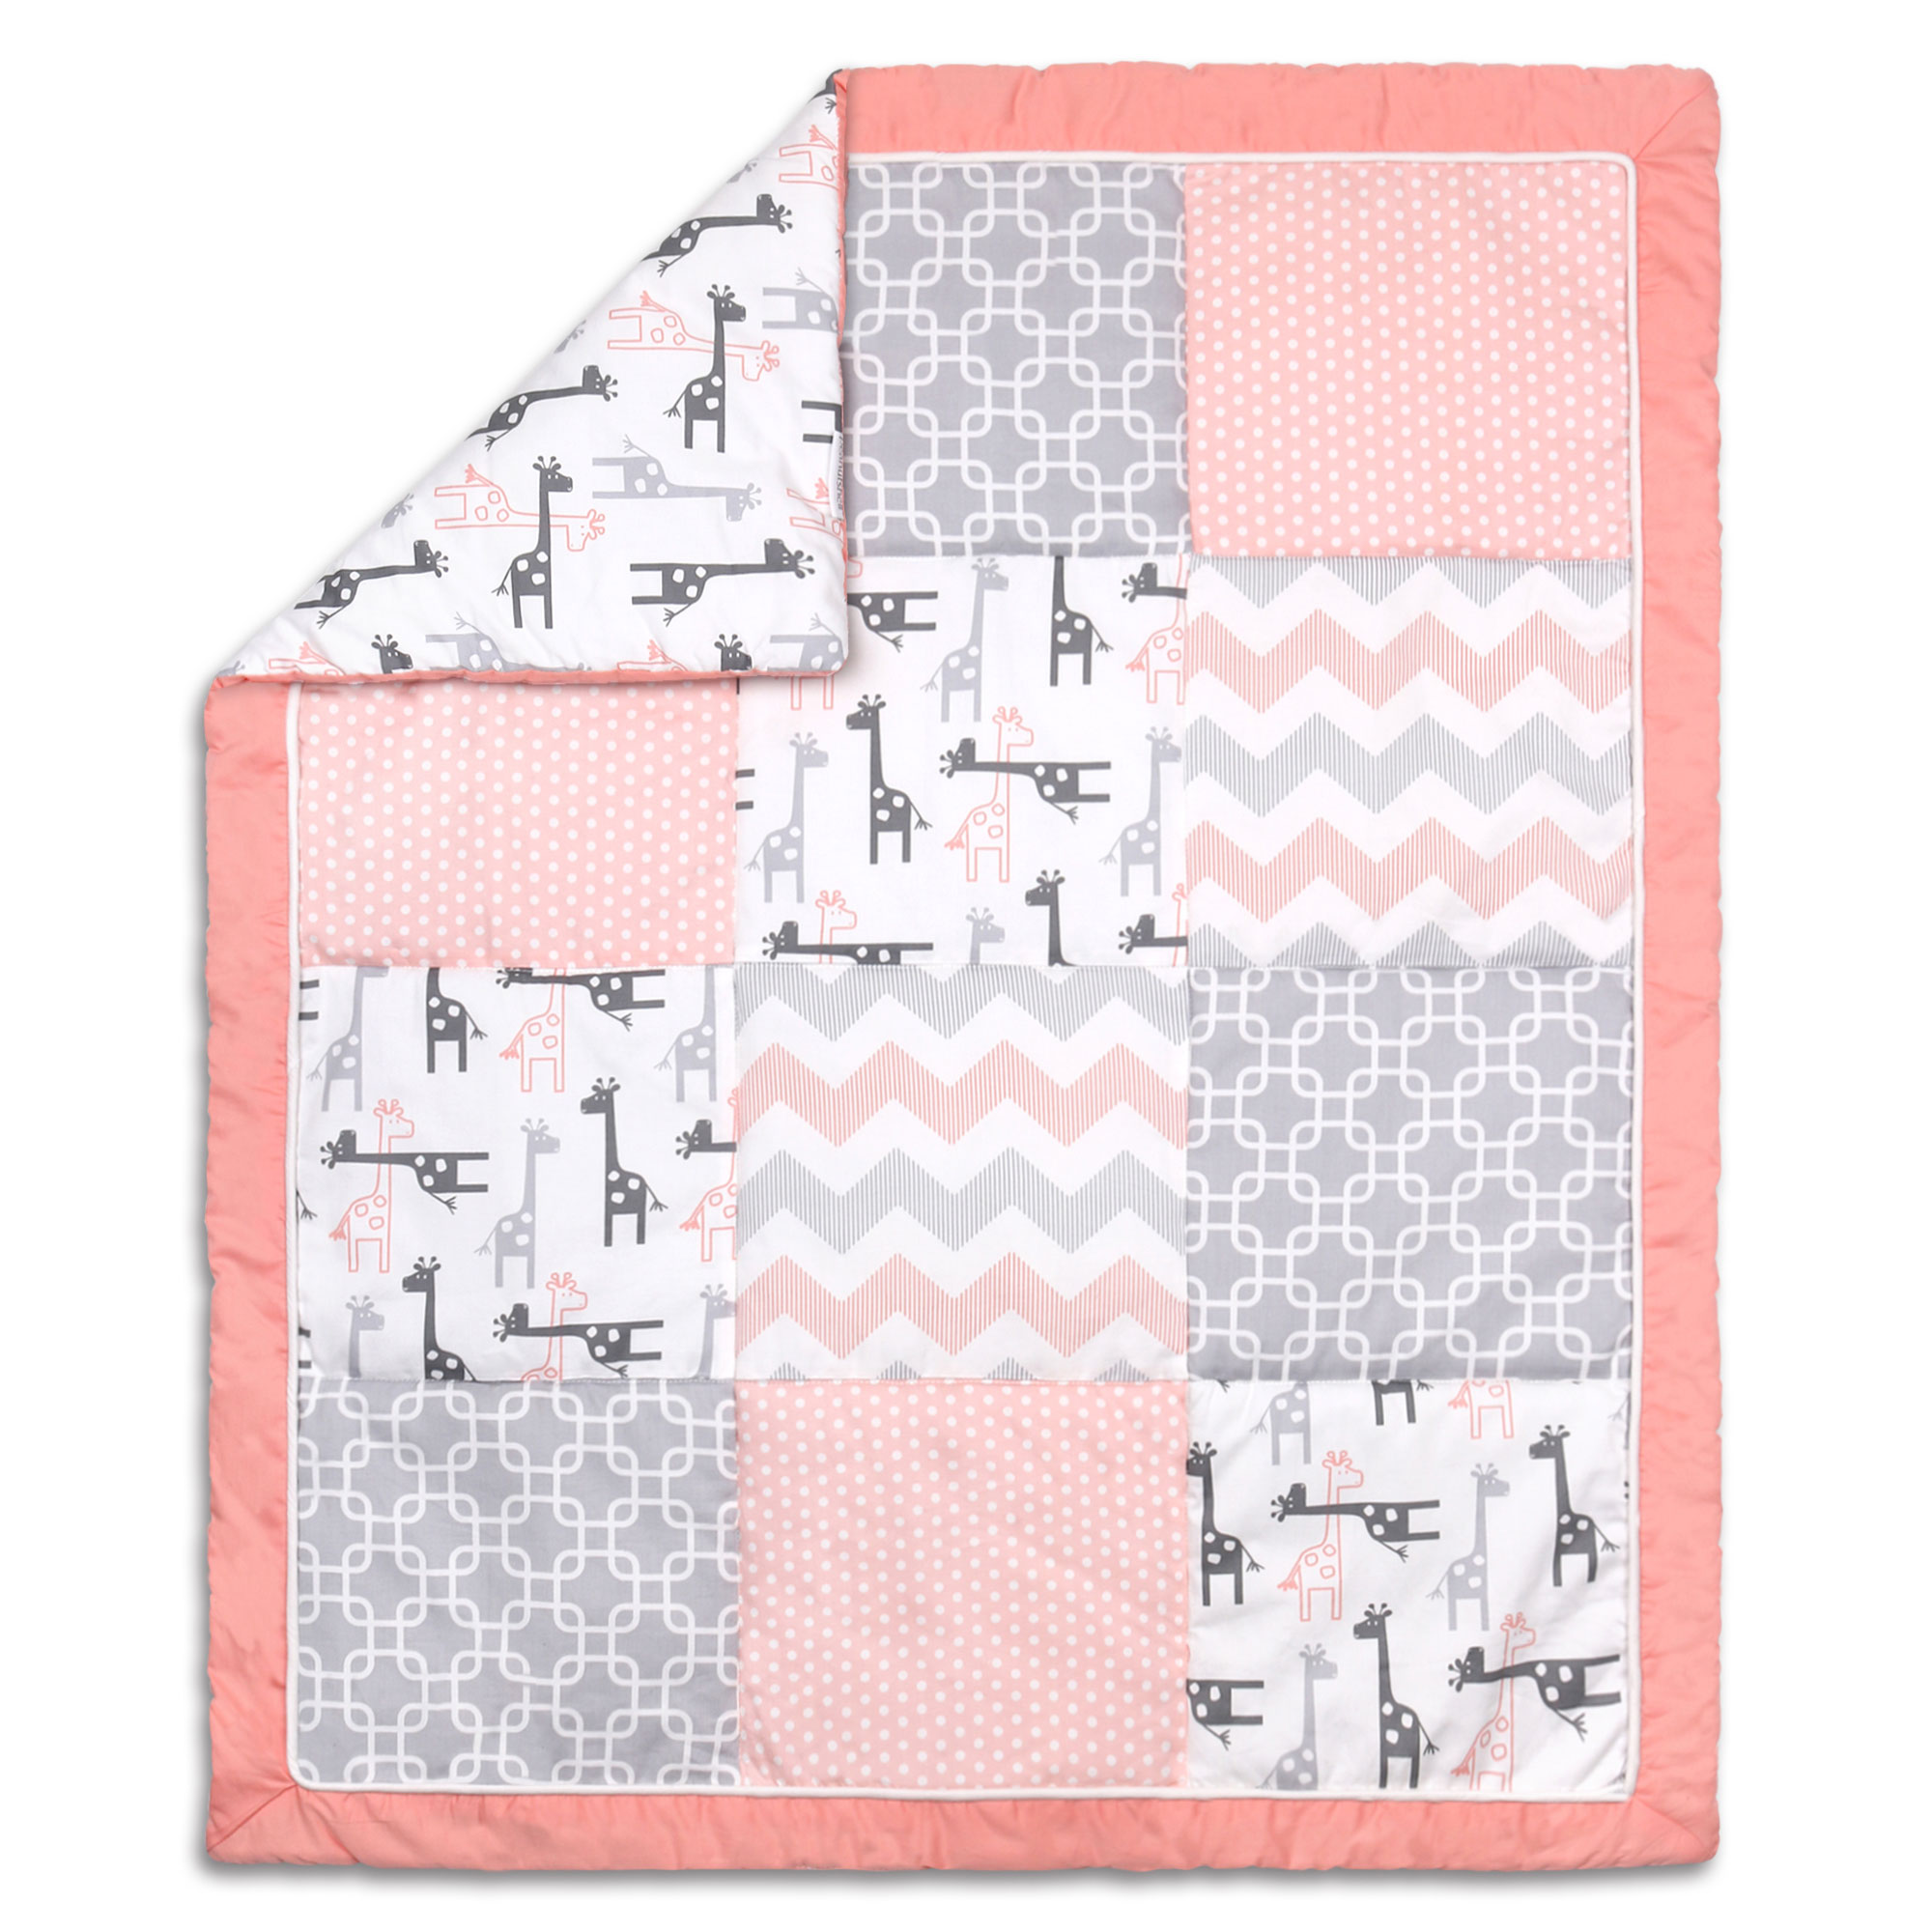 The Peanut Shell Baby Girl Crib Quilt Uptown Girl Coral and Grey Giraffe and Geometric Patchwork 100% Cotton... by The Peanut Shell